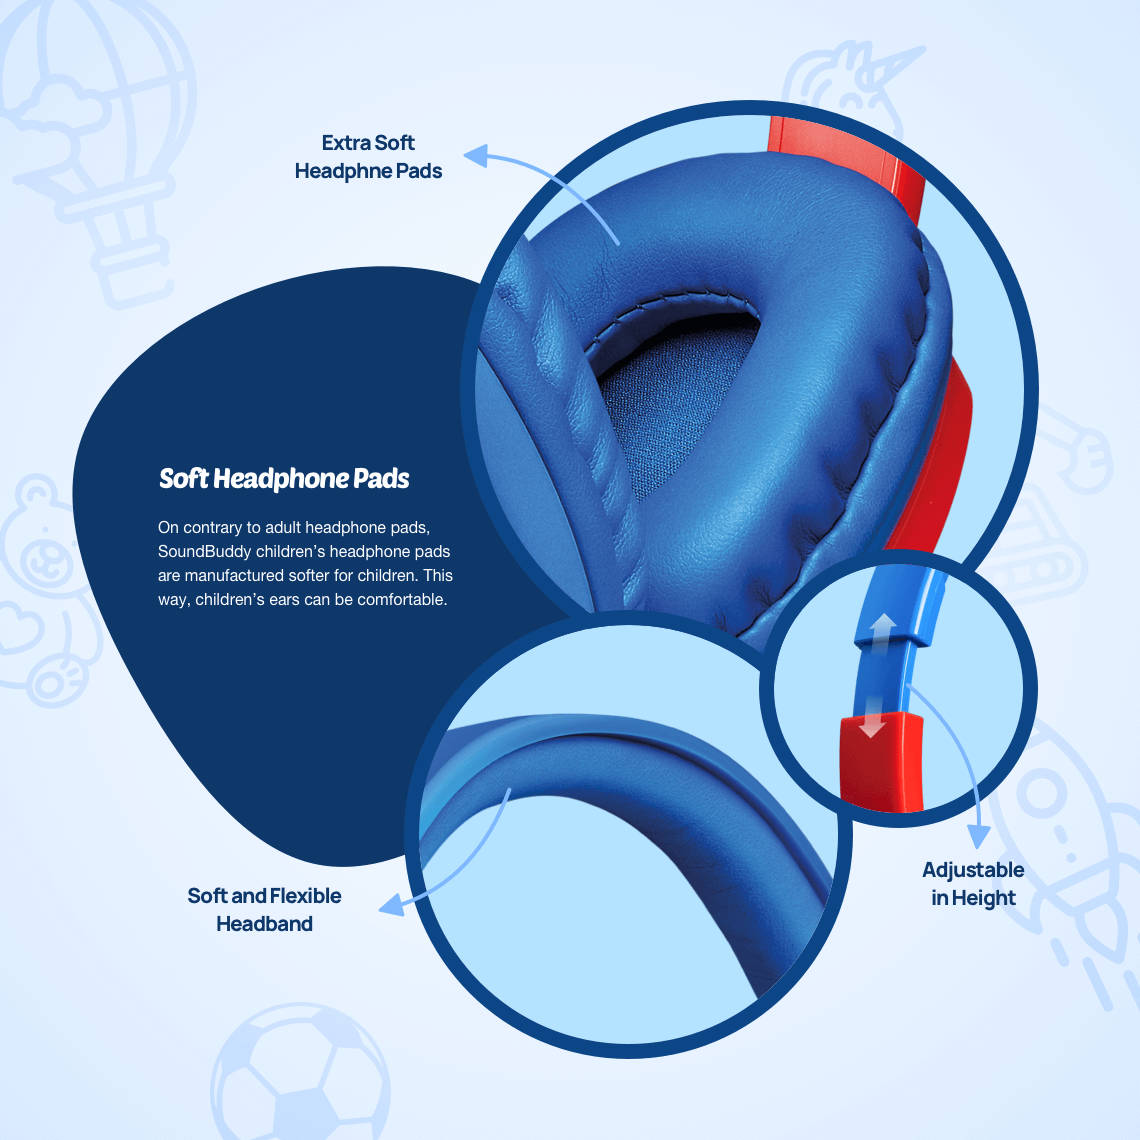 On contrary to adult headphone pads, SoundBuddy children's headphone pads are manufactured softer for children. This way, children's ears can be comfortable.